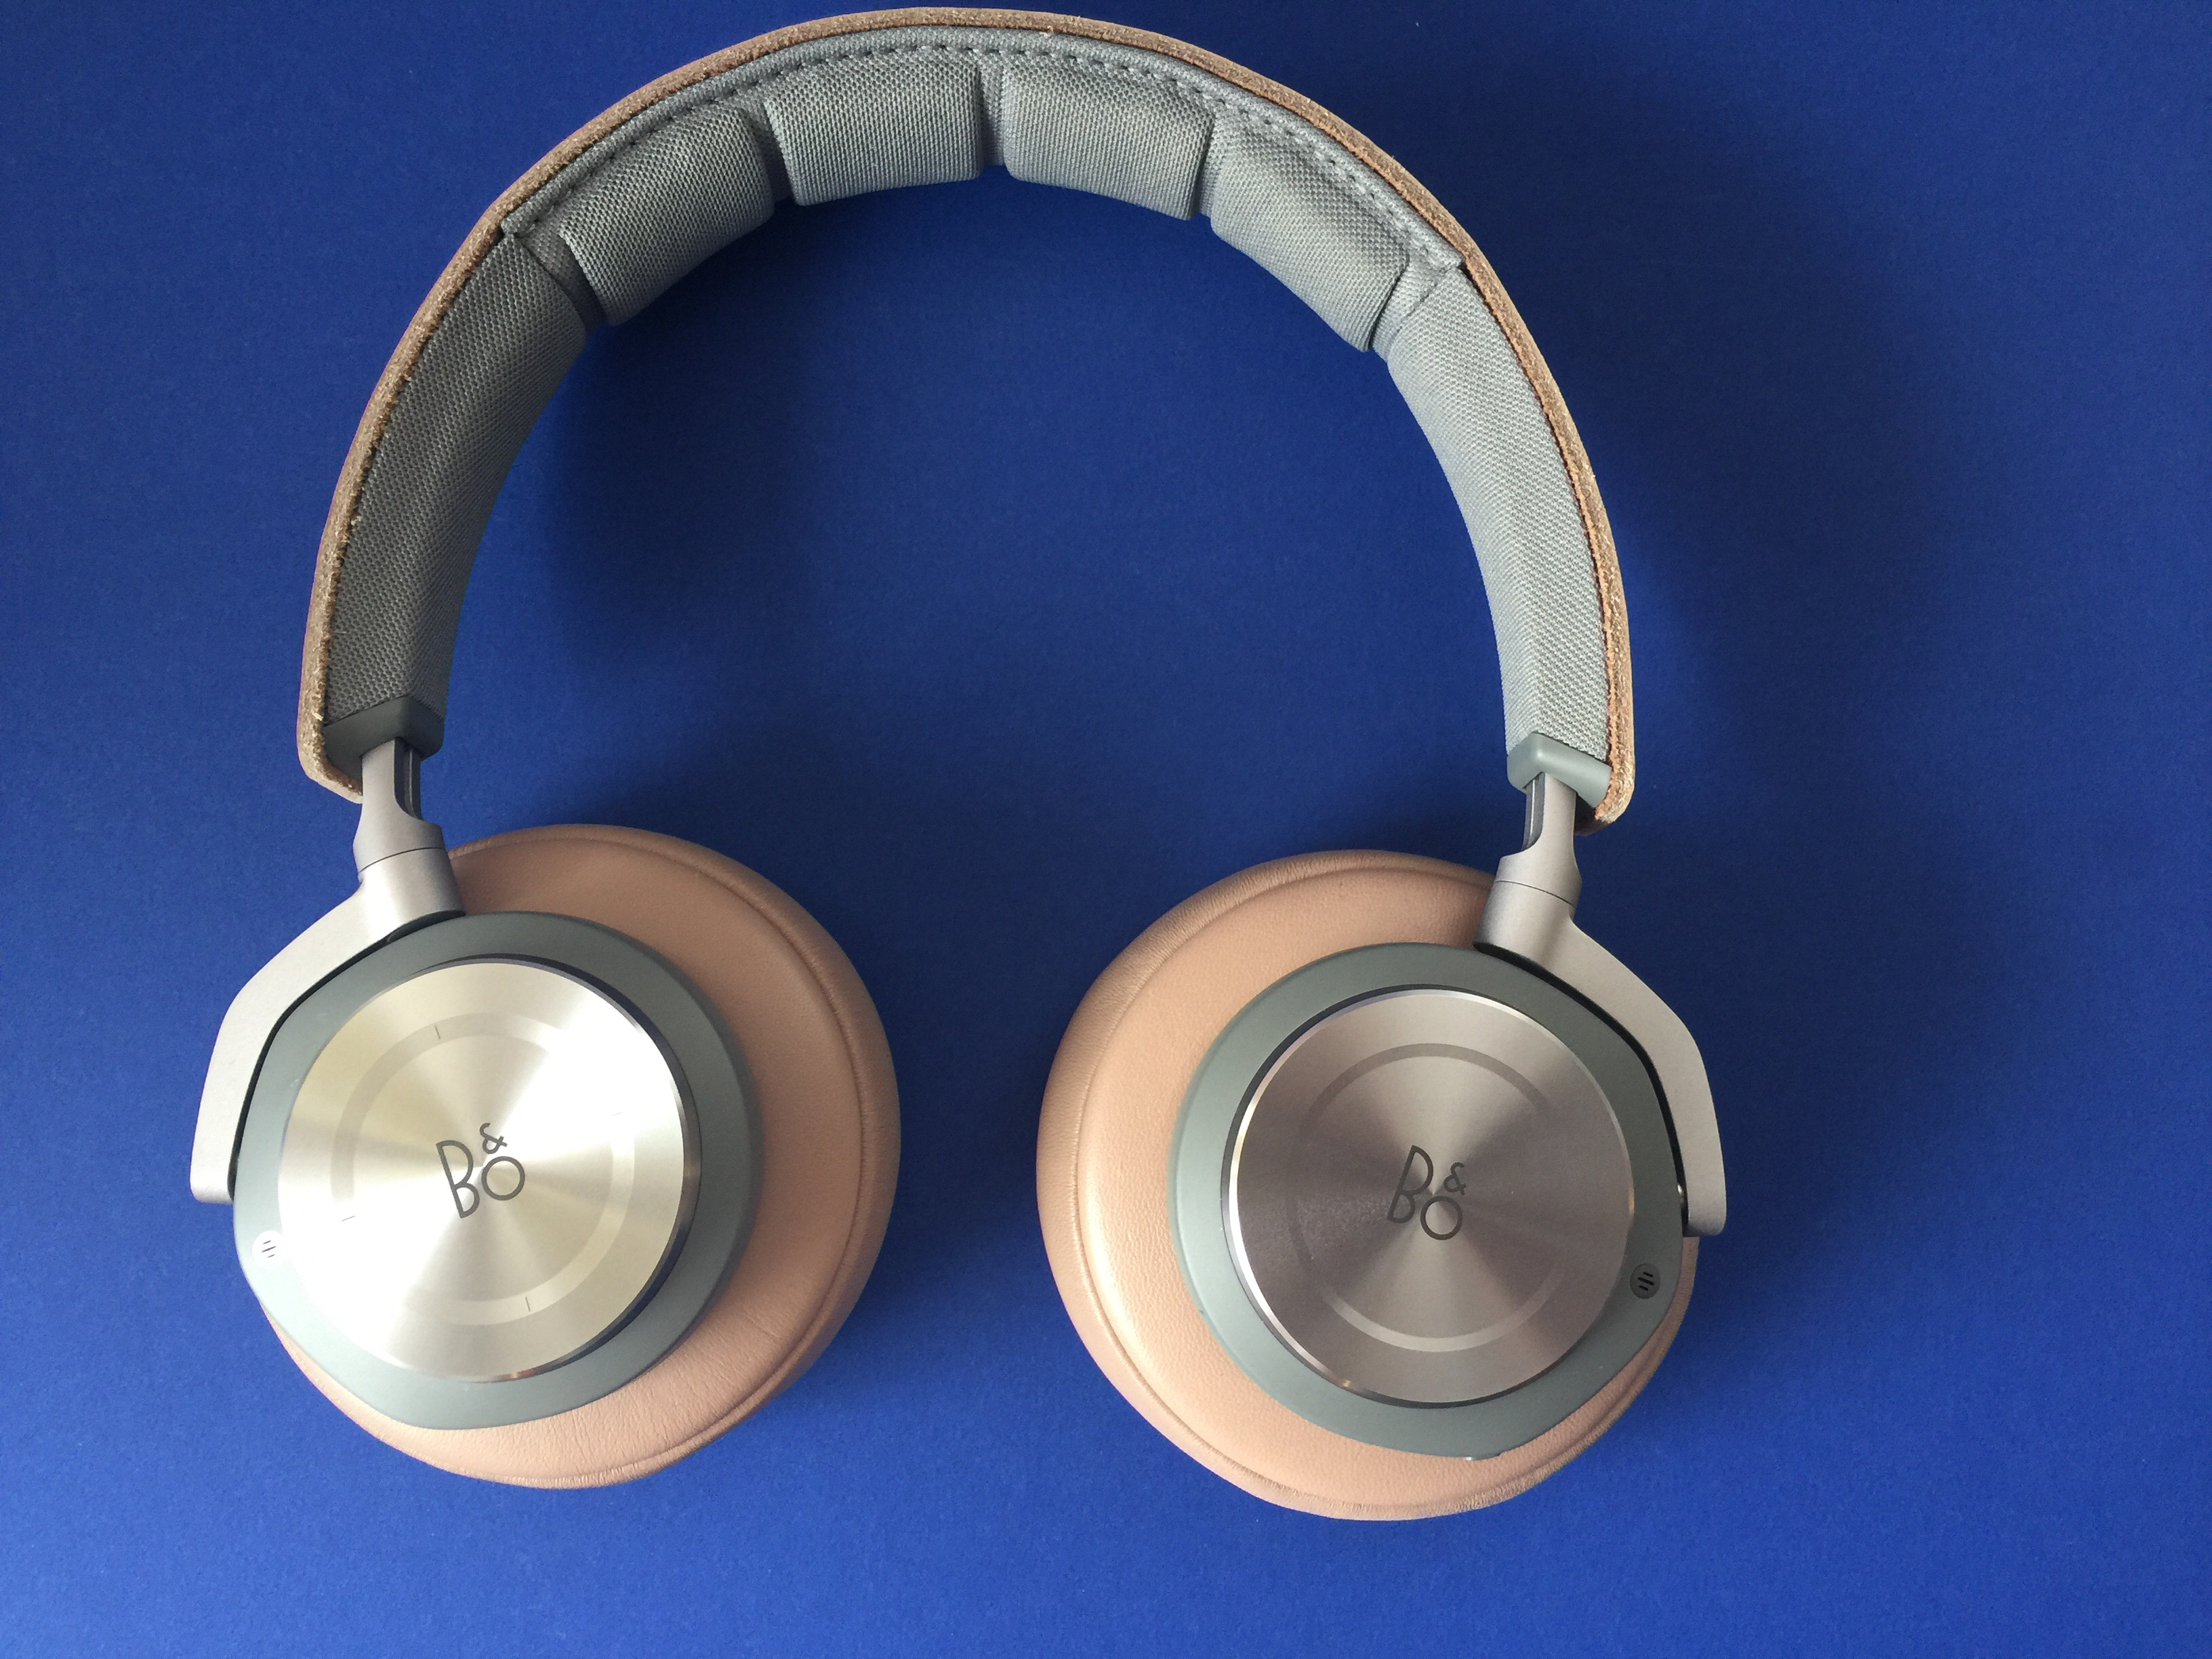 Bang olufsen beoplay H9